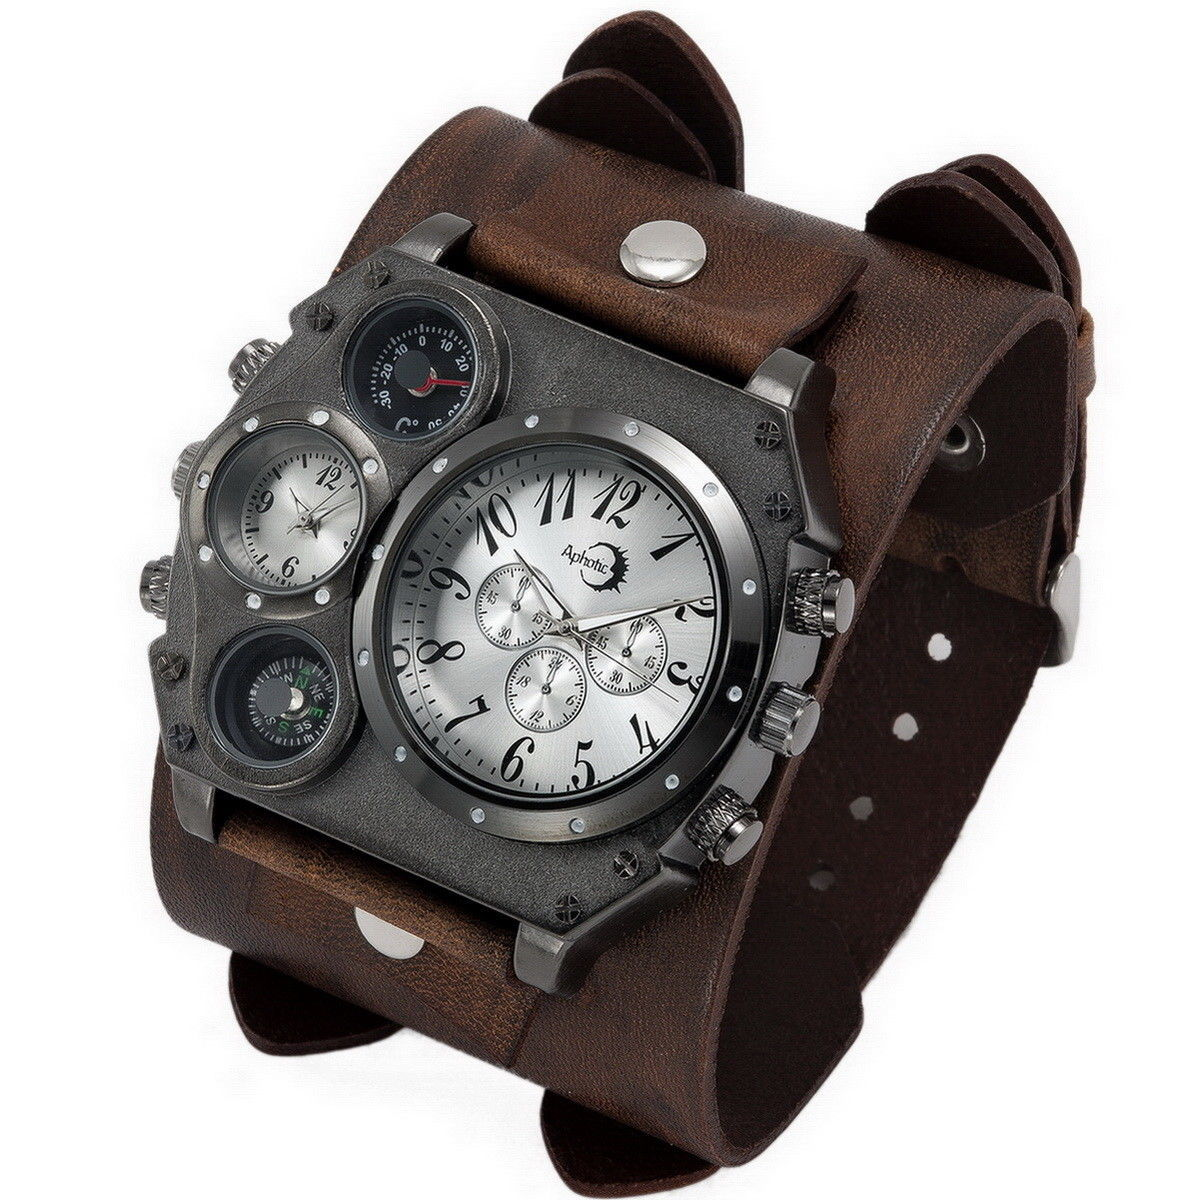 APHOTIC Black Dual Time Best Men Watch 2018 Dark Brown Wide Real Leather Strap